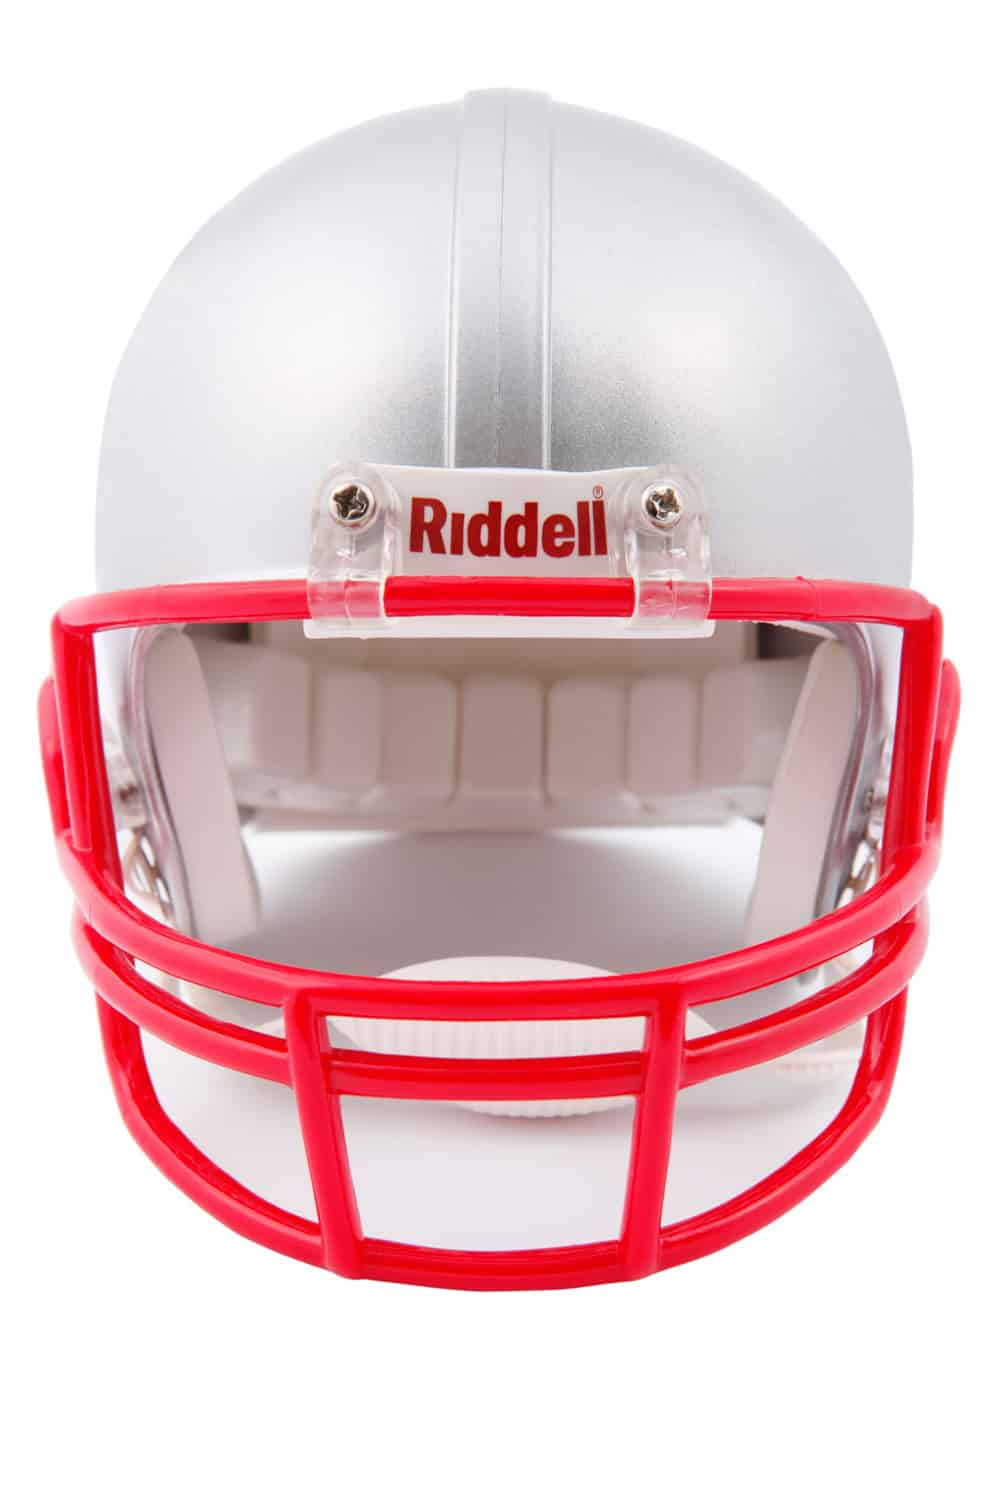 Grey American football helmet With Riddell on it. All is on a white background.